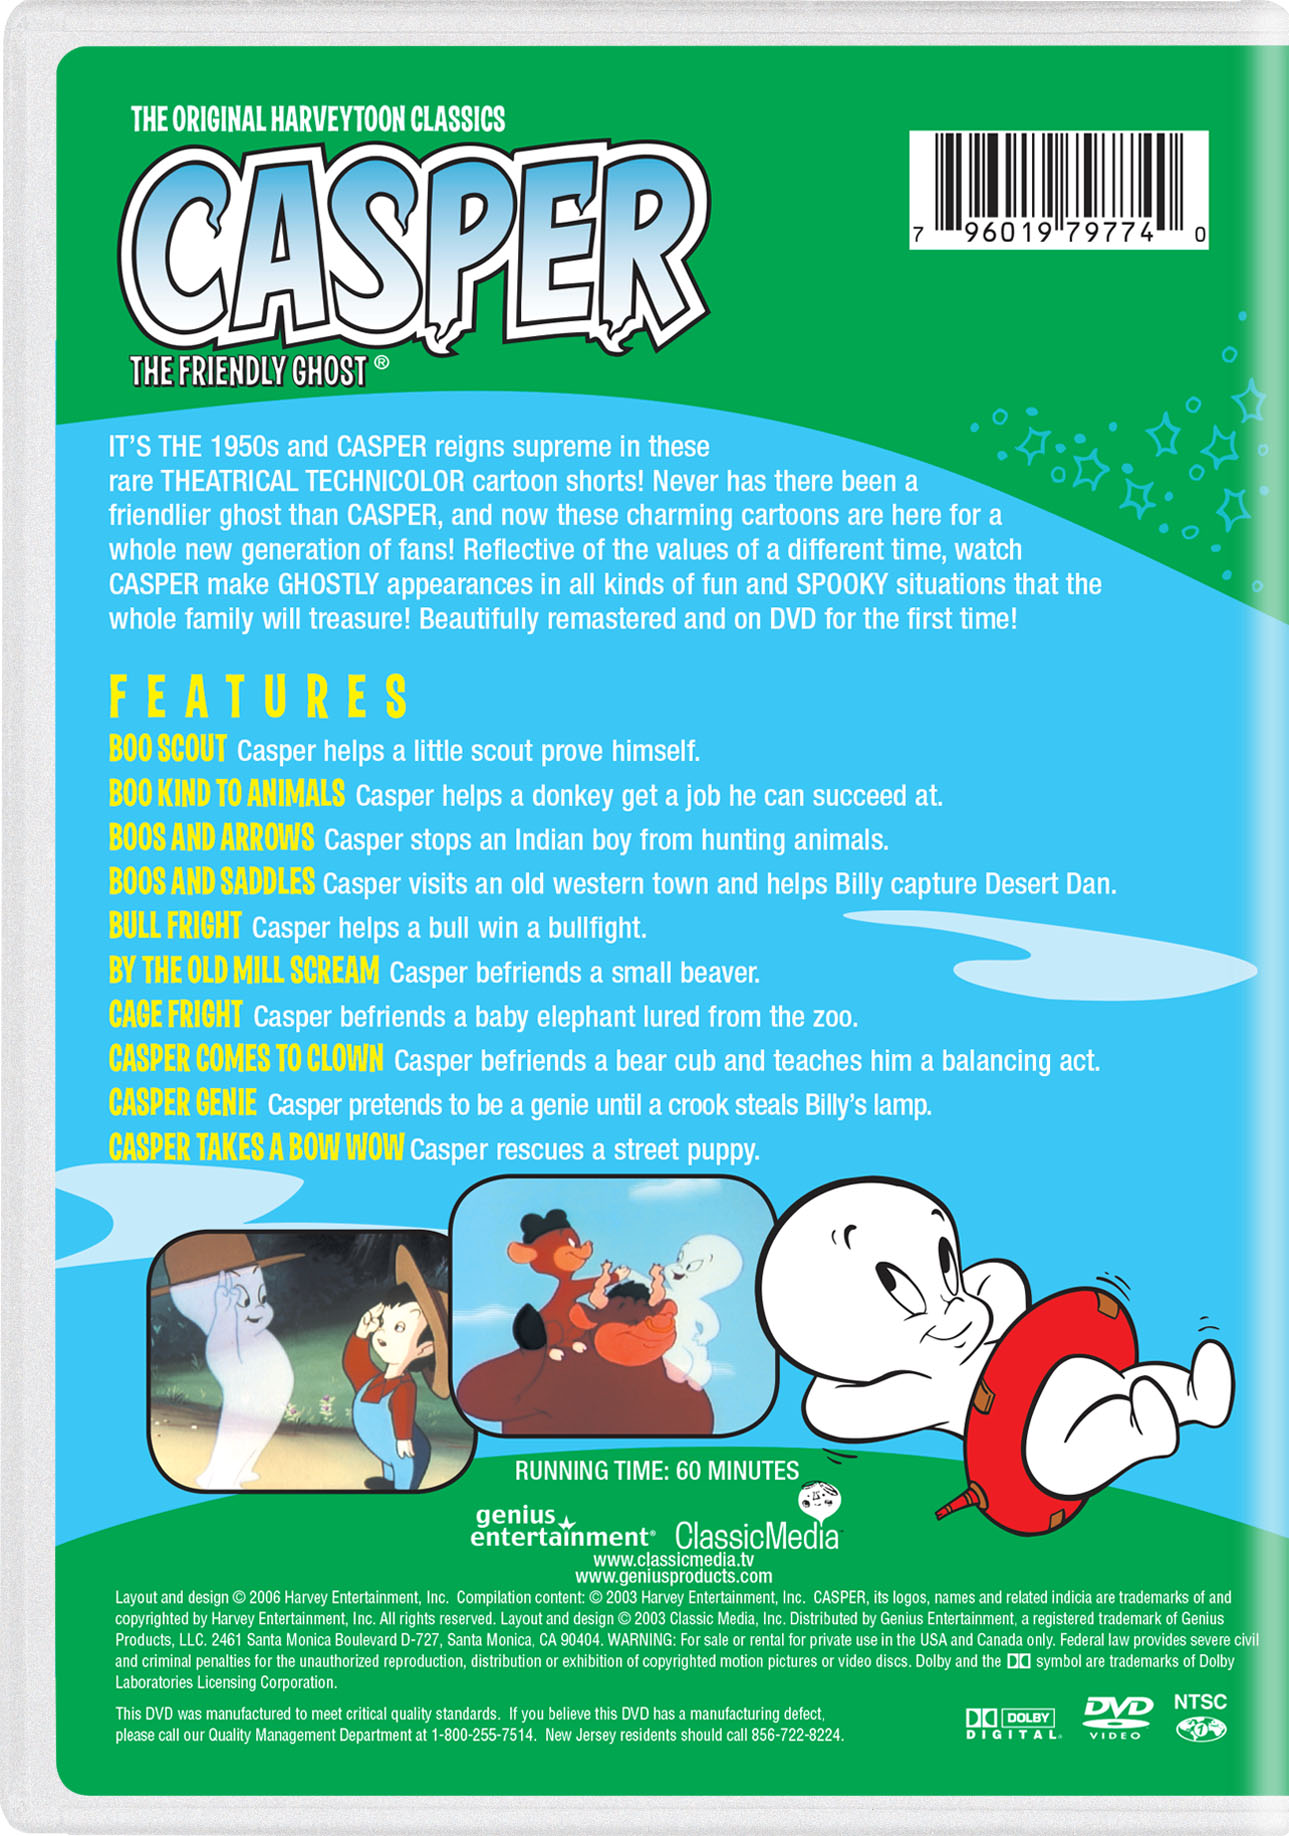 Casper the Friendly Ghost: By the Old Mill Scream | TV Show Page